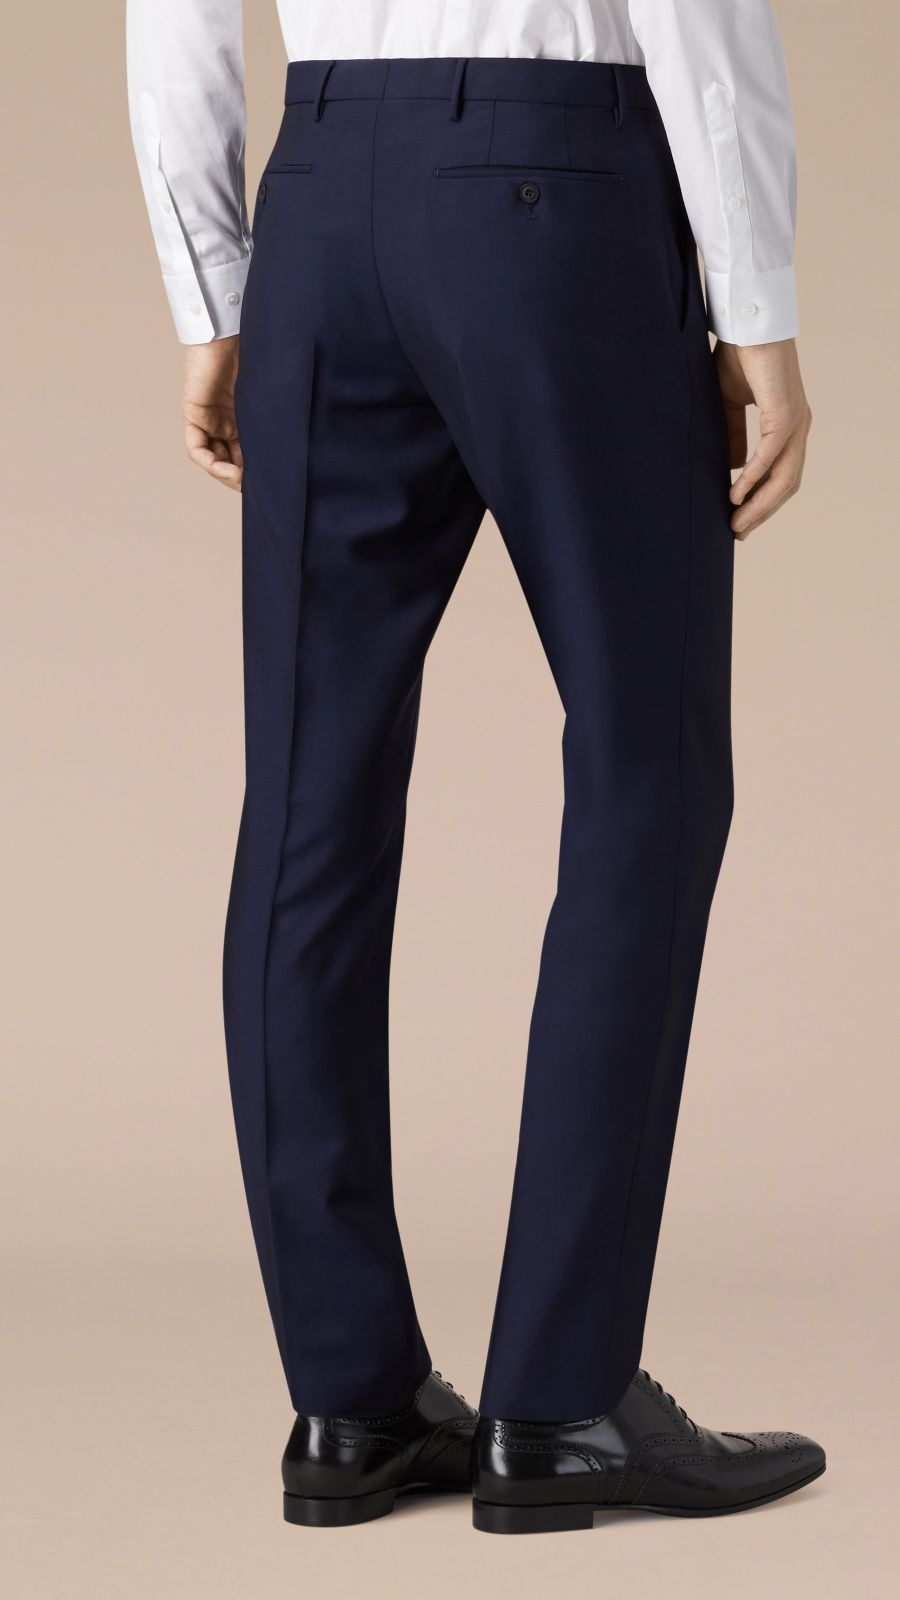 Royal navy Slim Fit Wool Mohair Trousers Royal Navy - Image 3